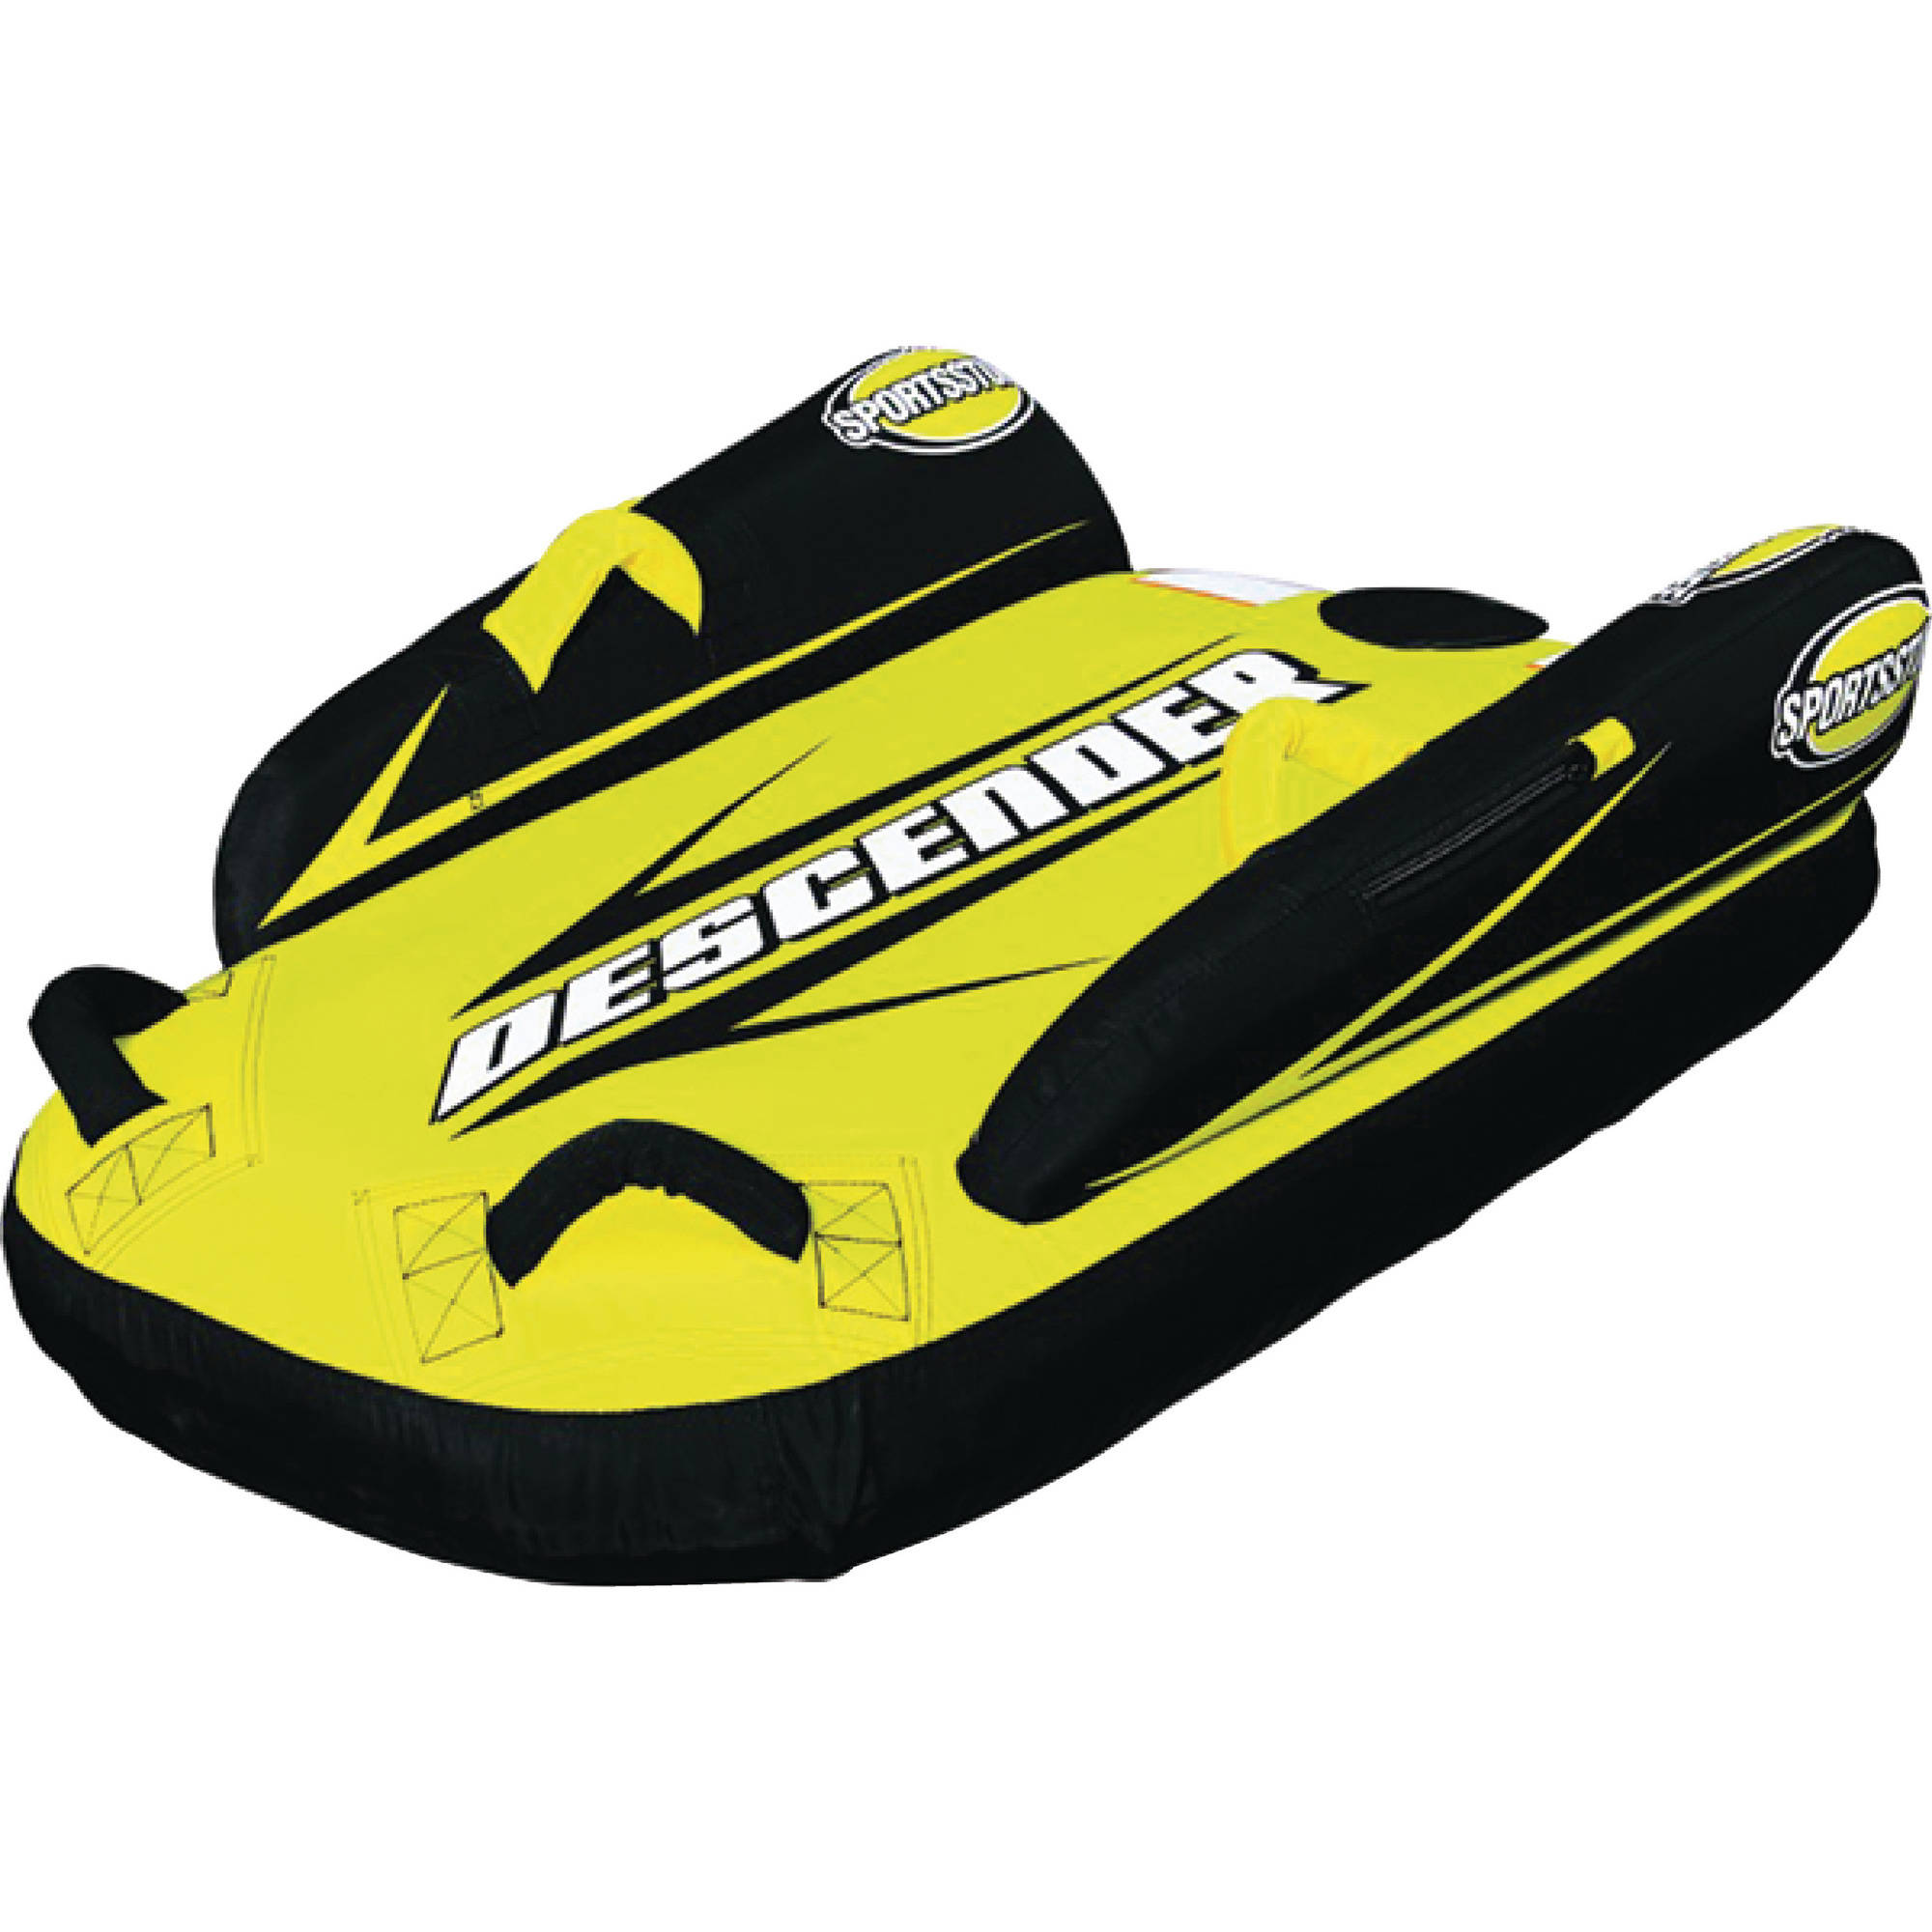 Sporsstuff 30-2000 Descender Single Rider Snow Tube Sled by Kwik-Tek inc.